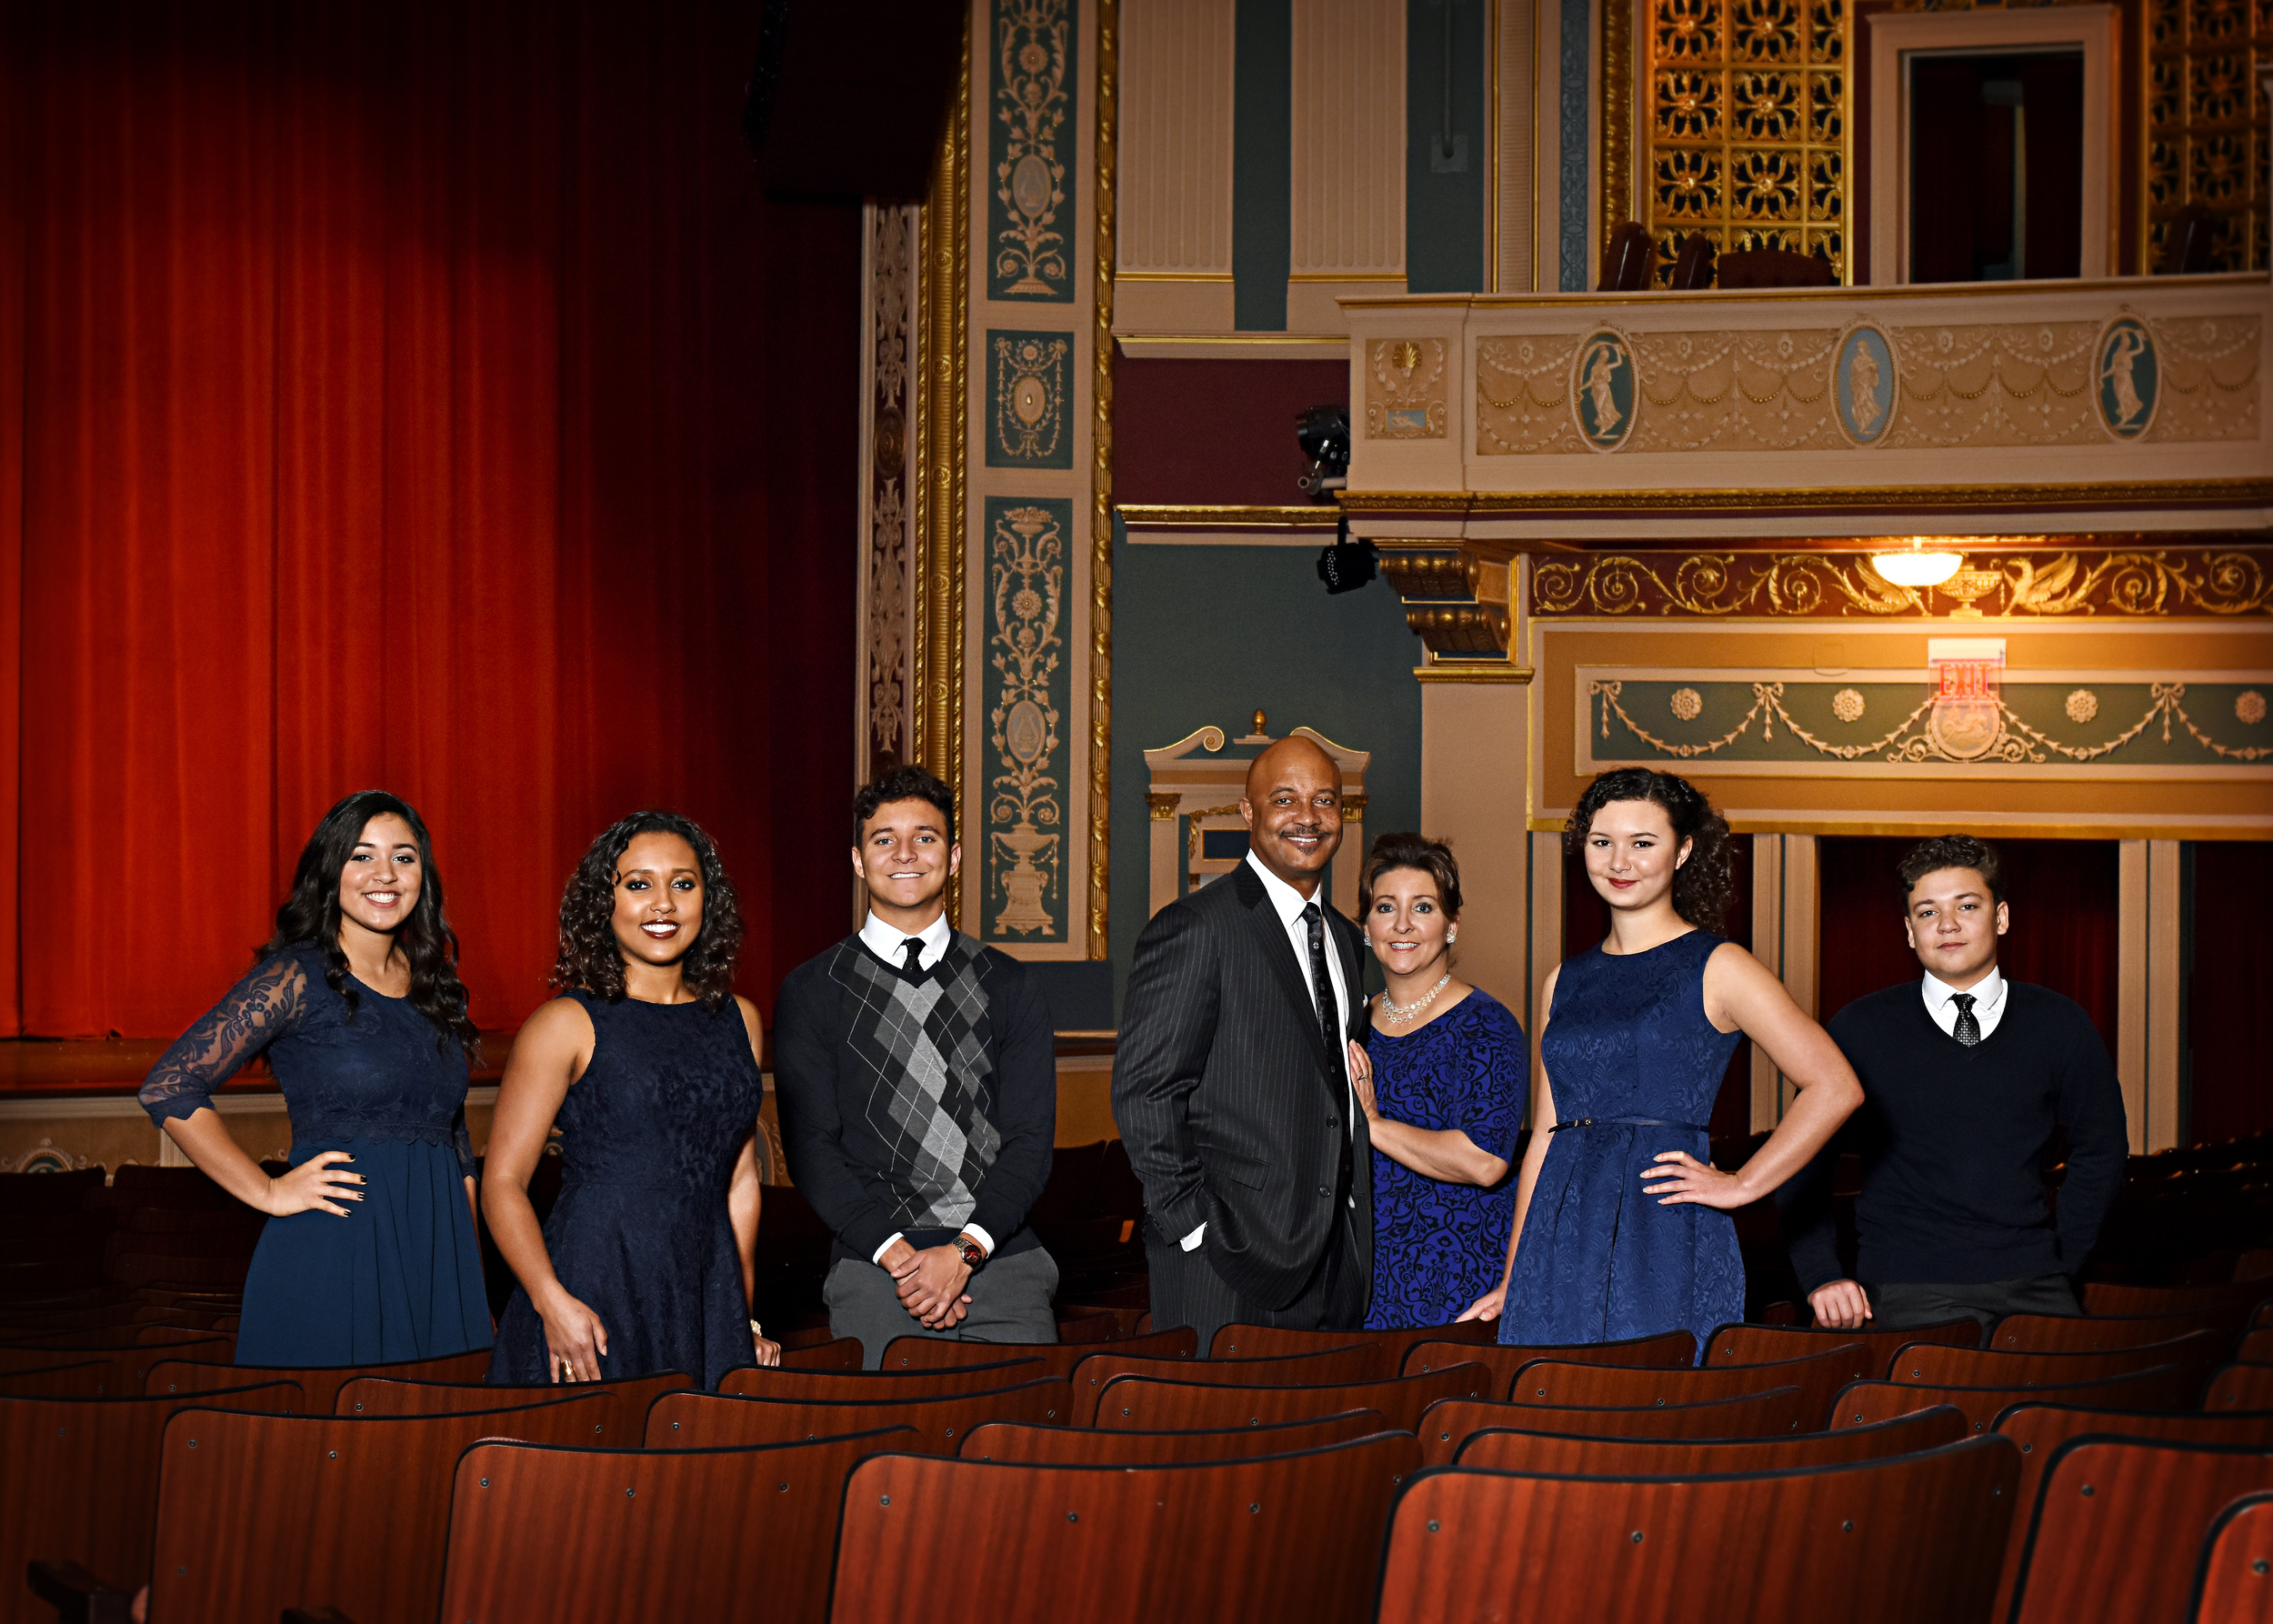 As a theater family, many Hill family members have performed at Lerner Theater productions in Elkhart, including Curtis.